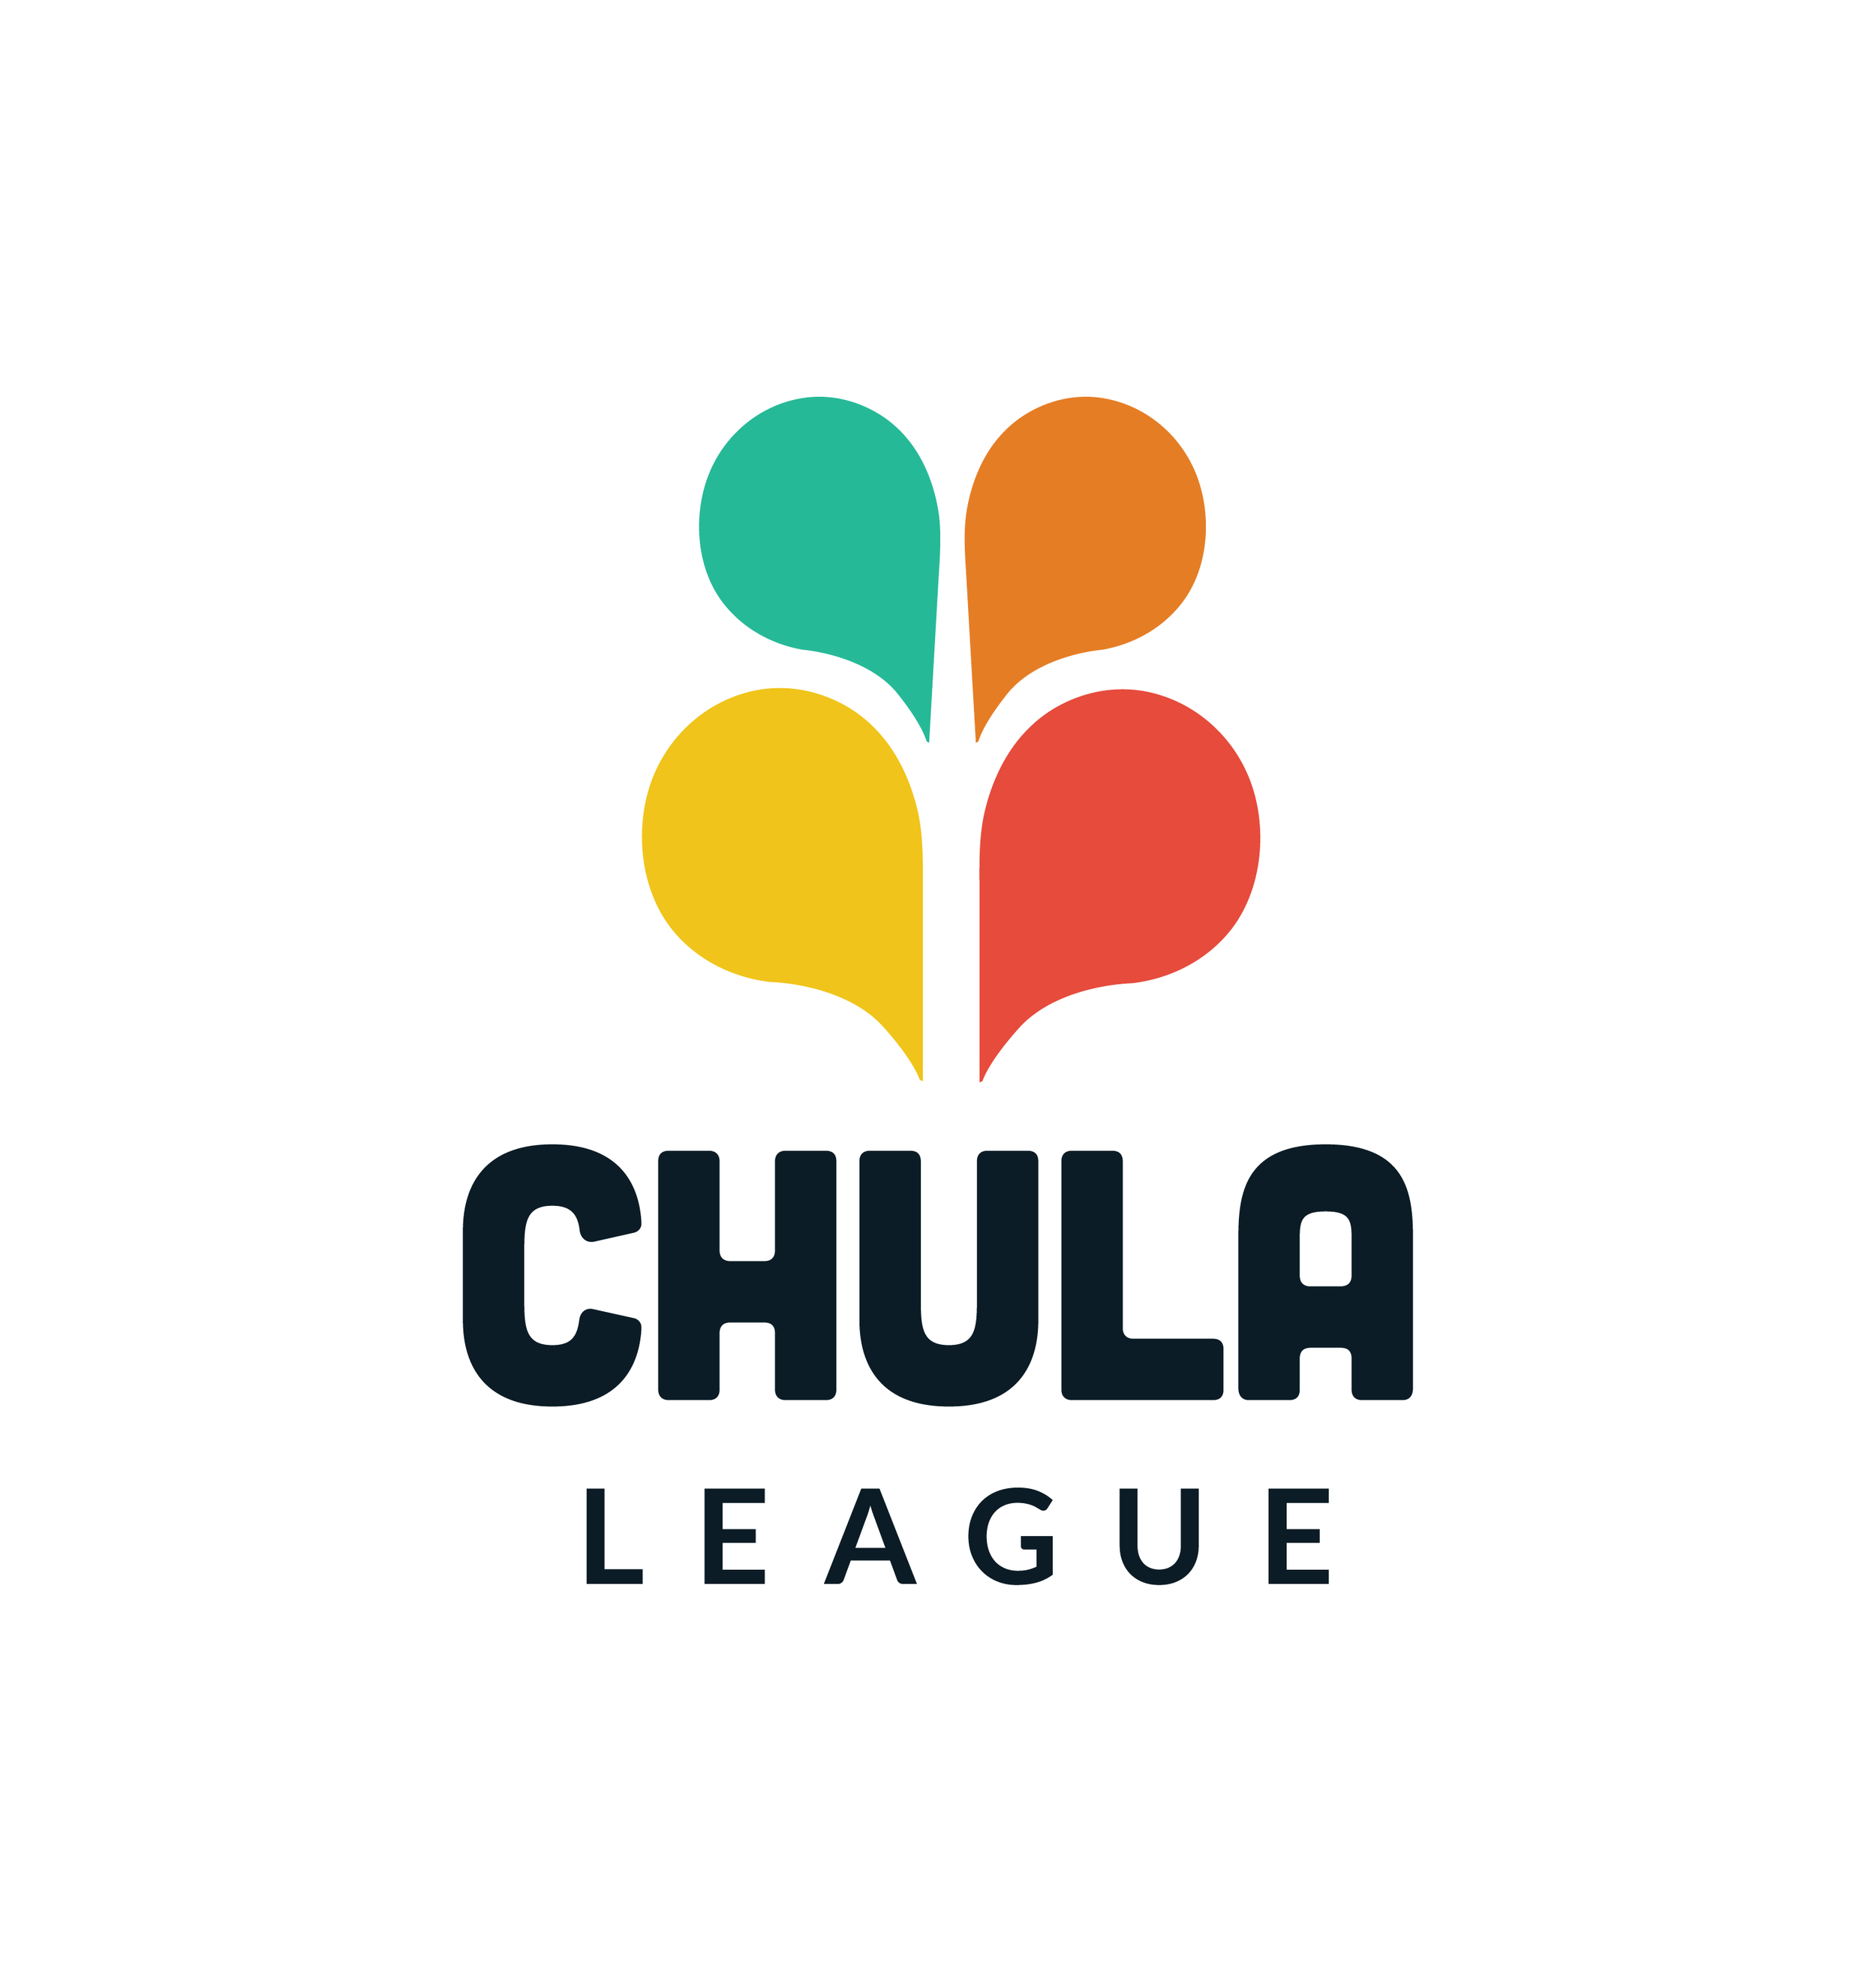 ChulaLeague_logo-01.png